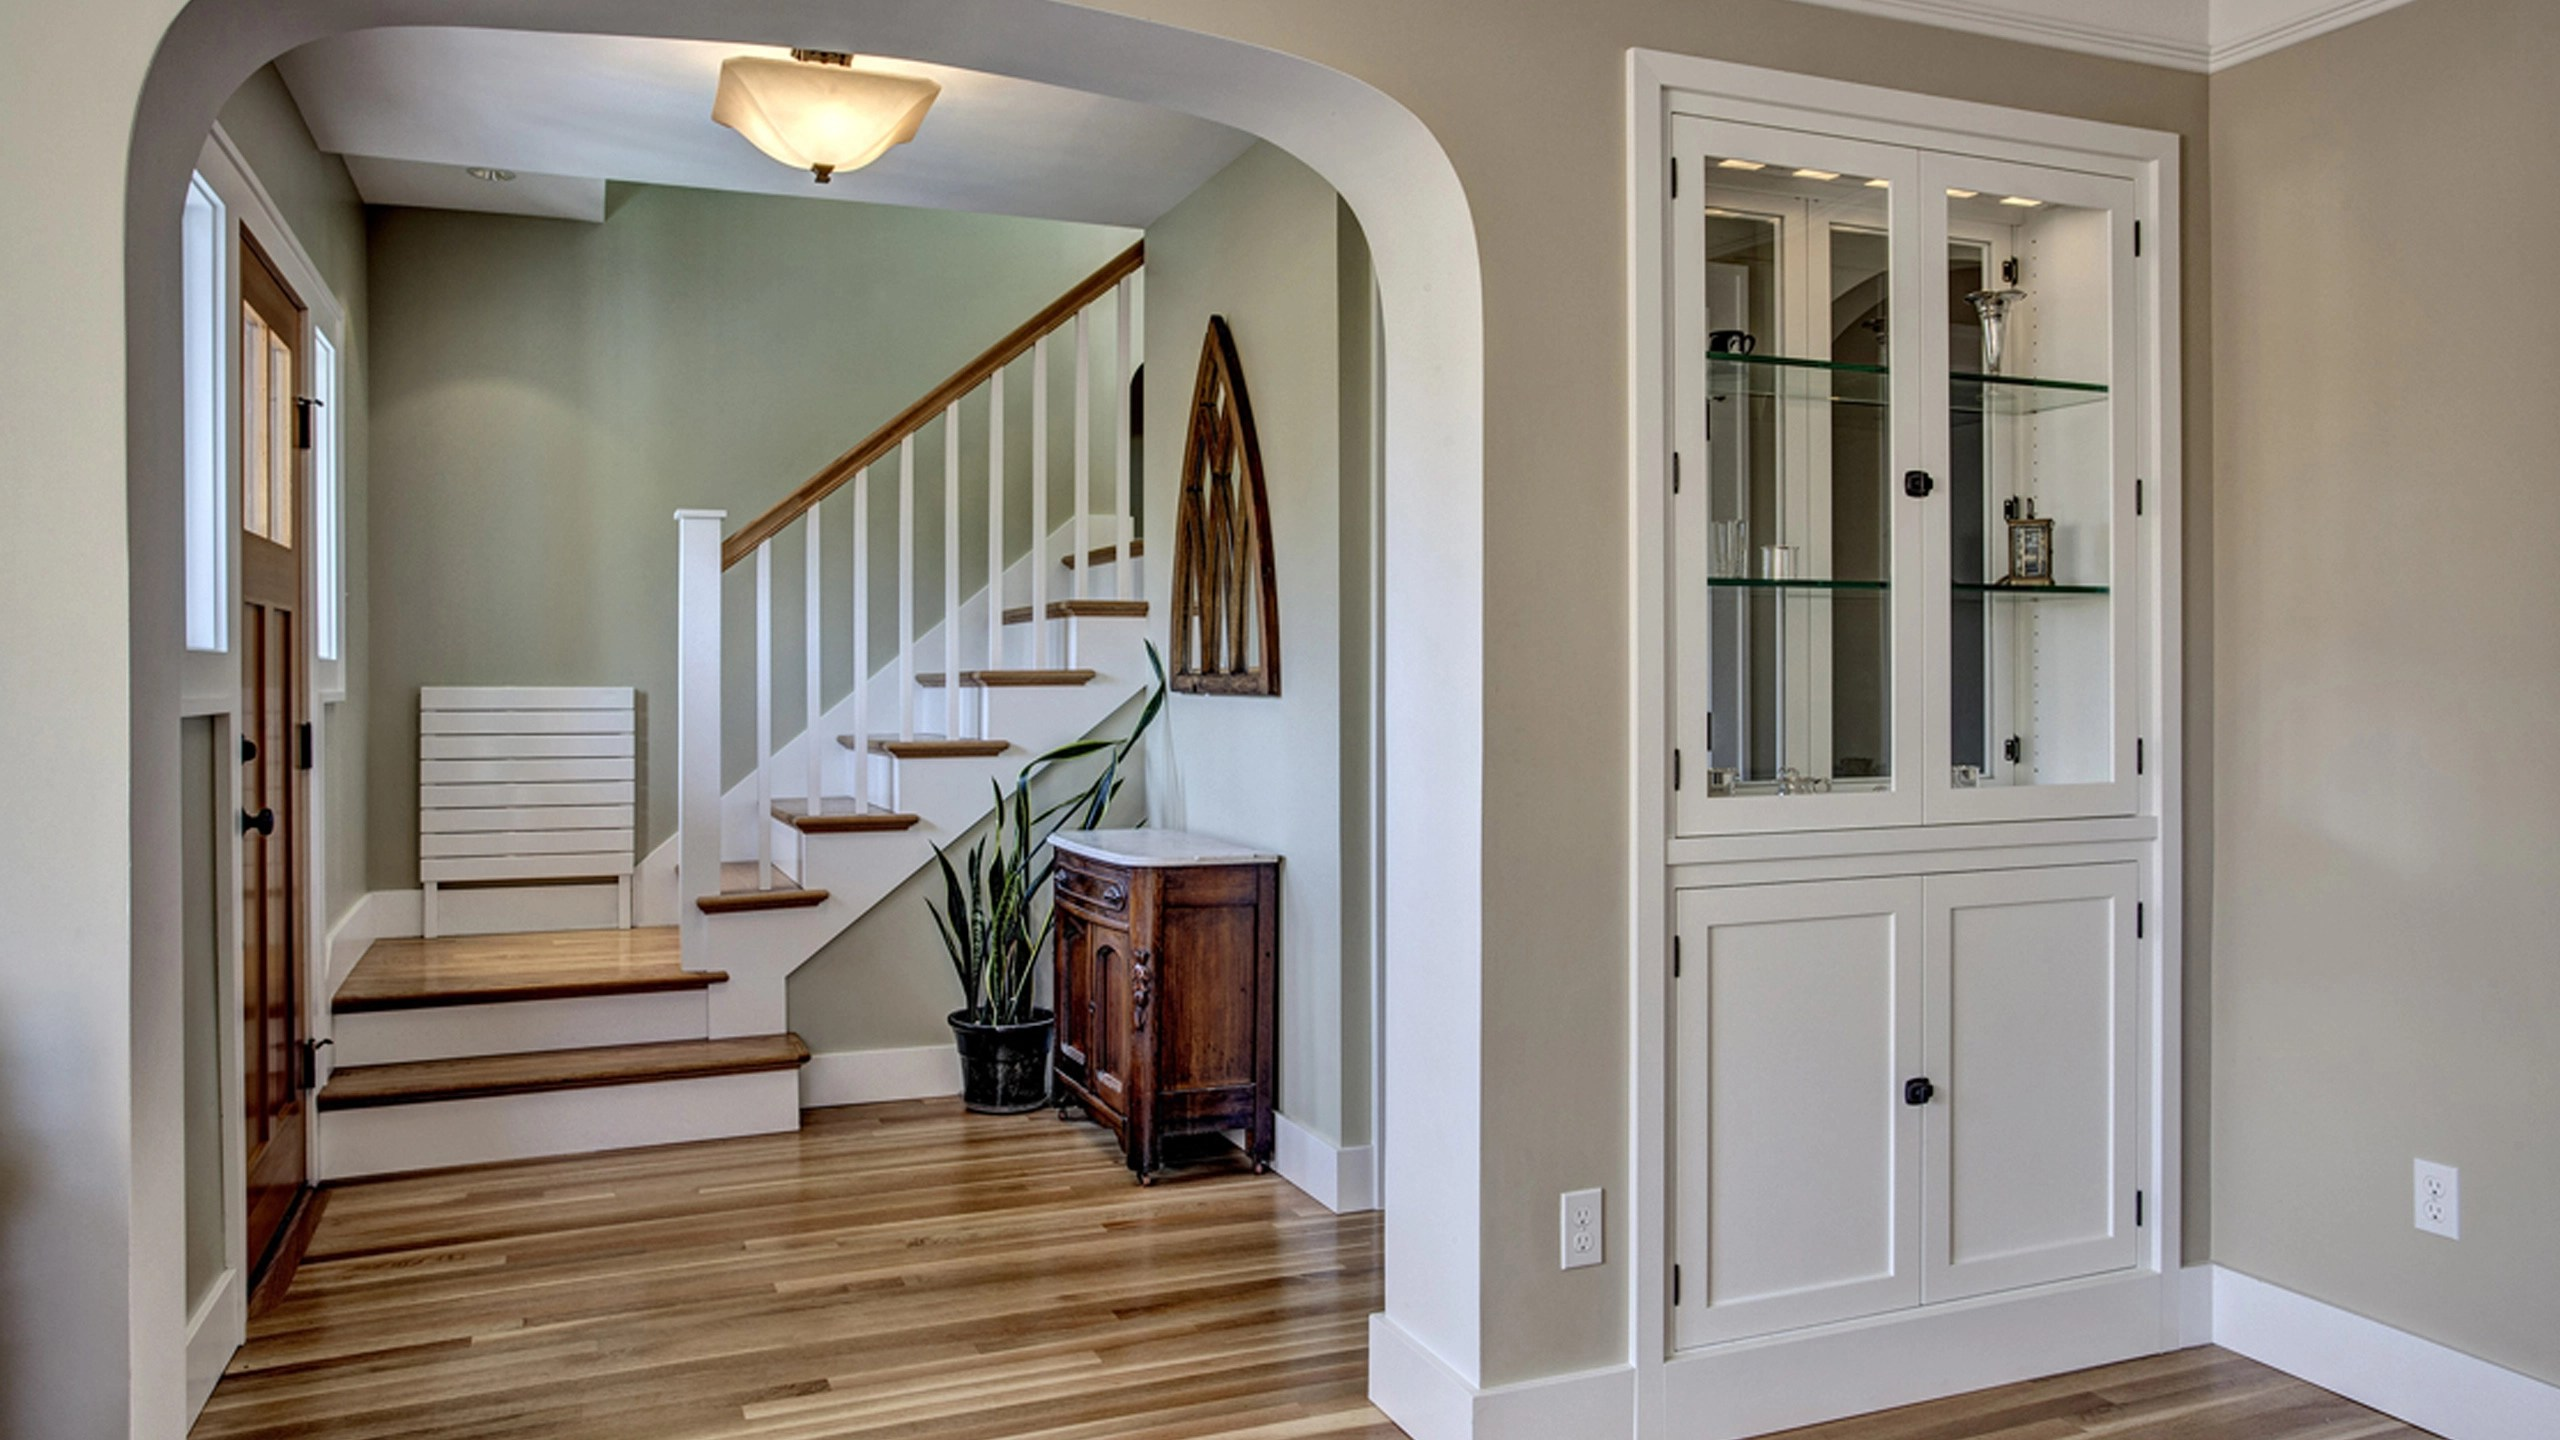 The Ups And Downs Of Staircase Design Board Vellum